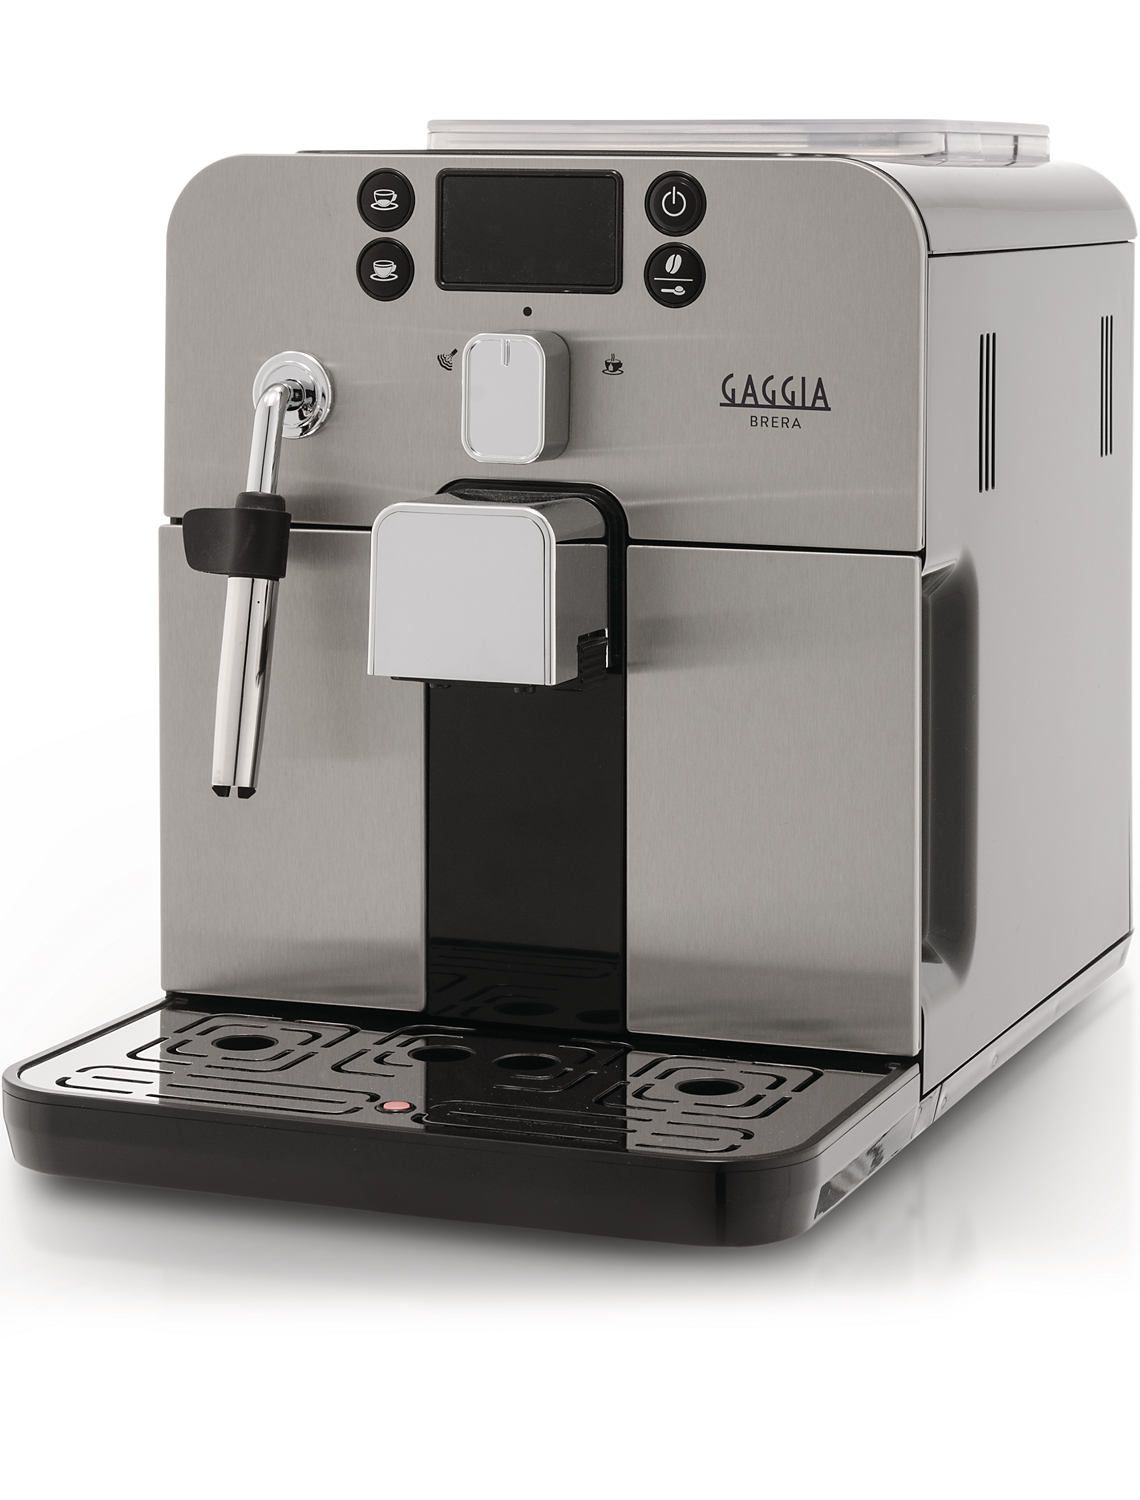 Gaggia Brera Superautomatic Espresso Machine Review (With